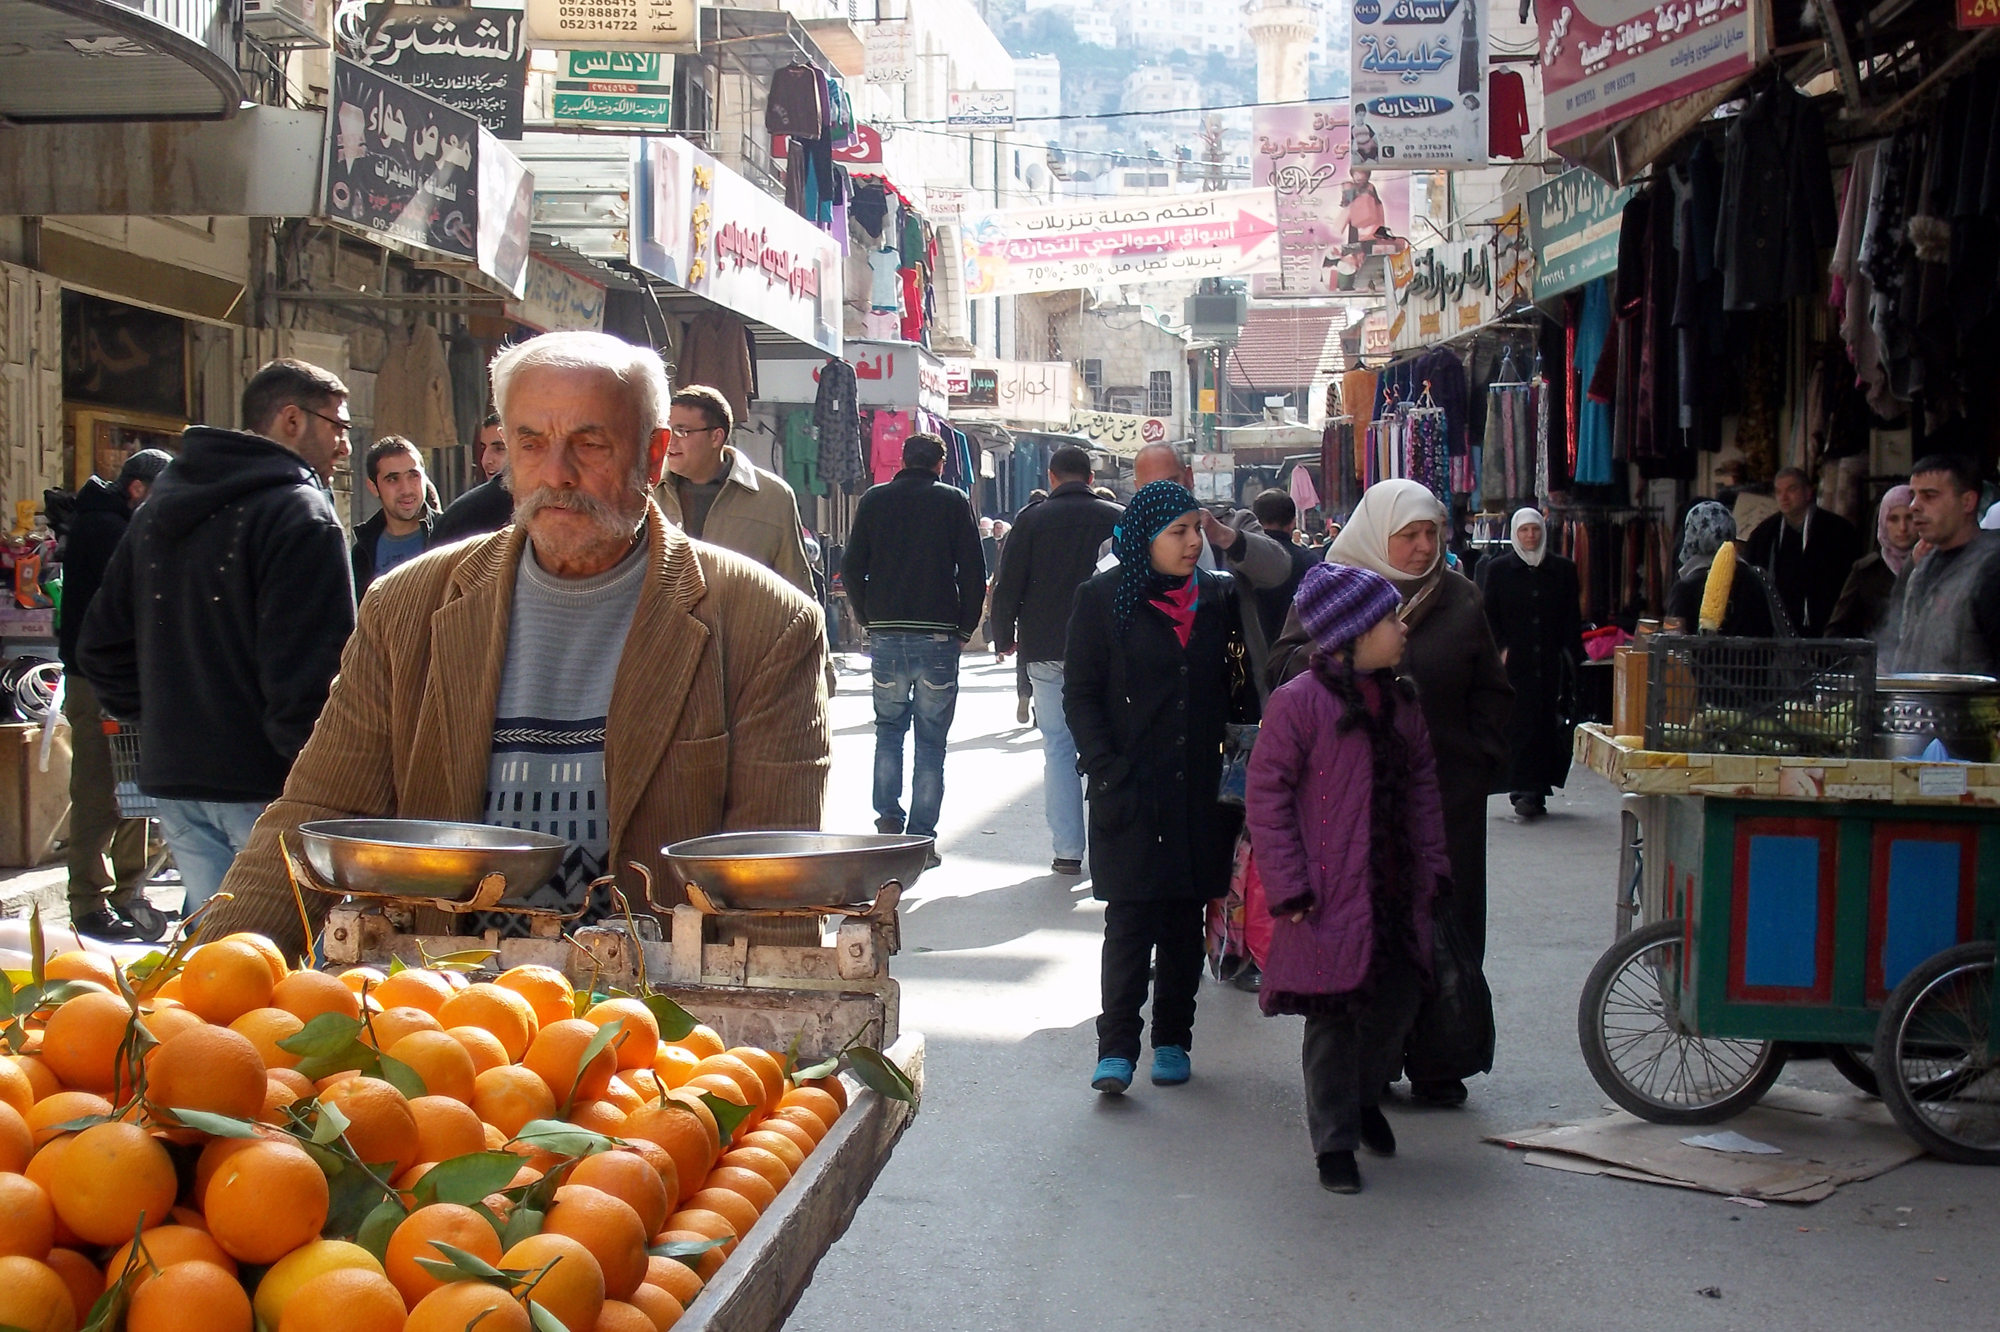 Palestinian man selling oranges in the Old City of Nablus. Despite some economic growth reported in the West Bank in 2011, purchasing power remains low. Unemployment in the West Bank hovers at 24 percent, according to the UN